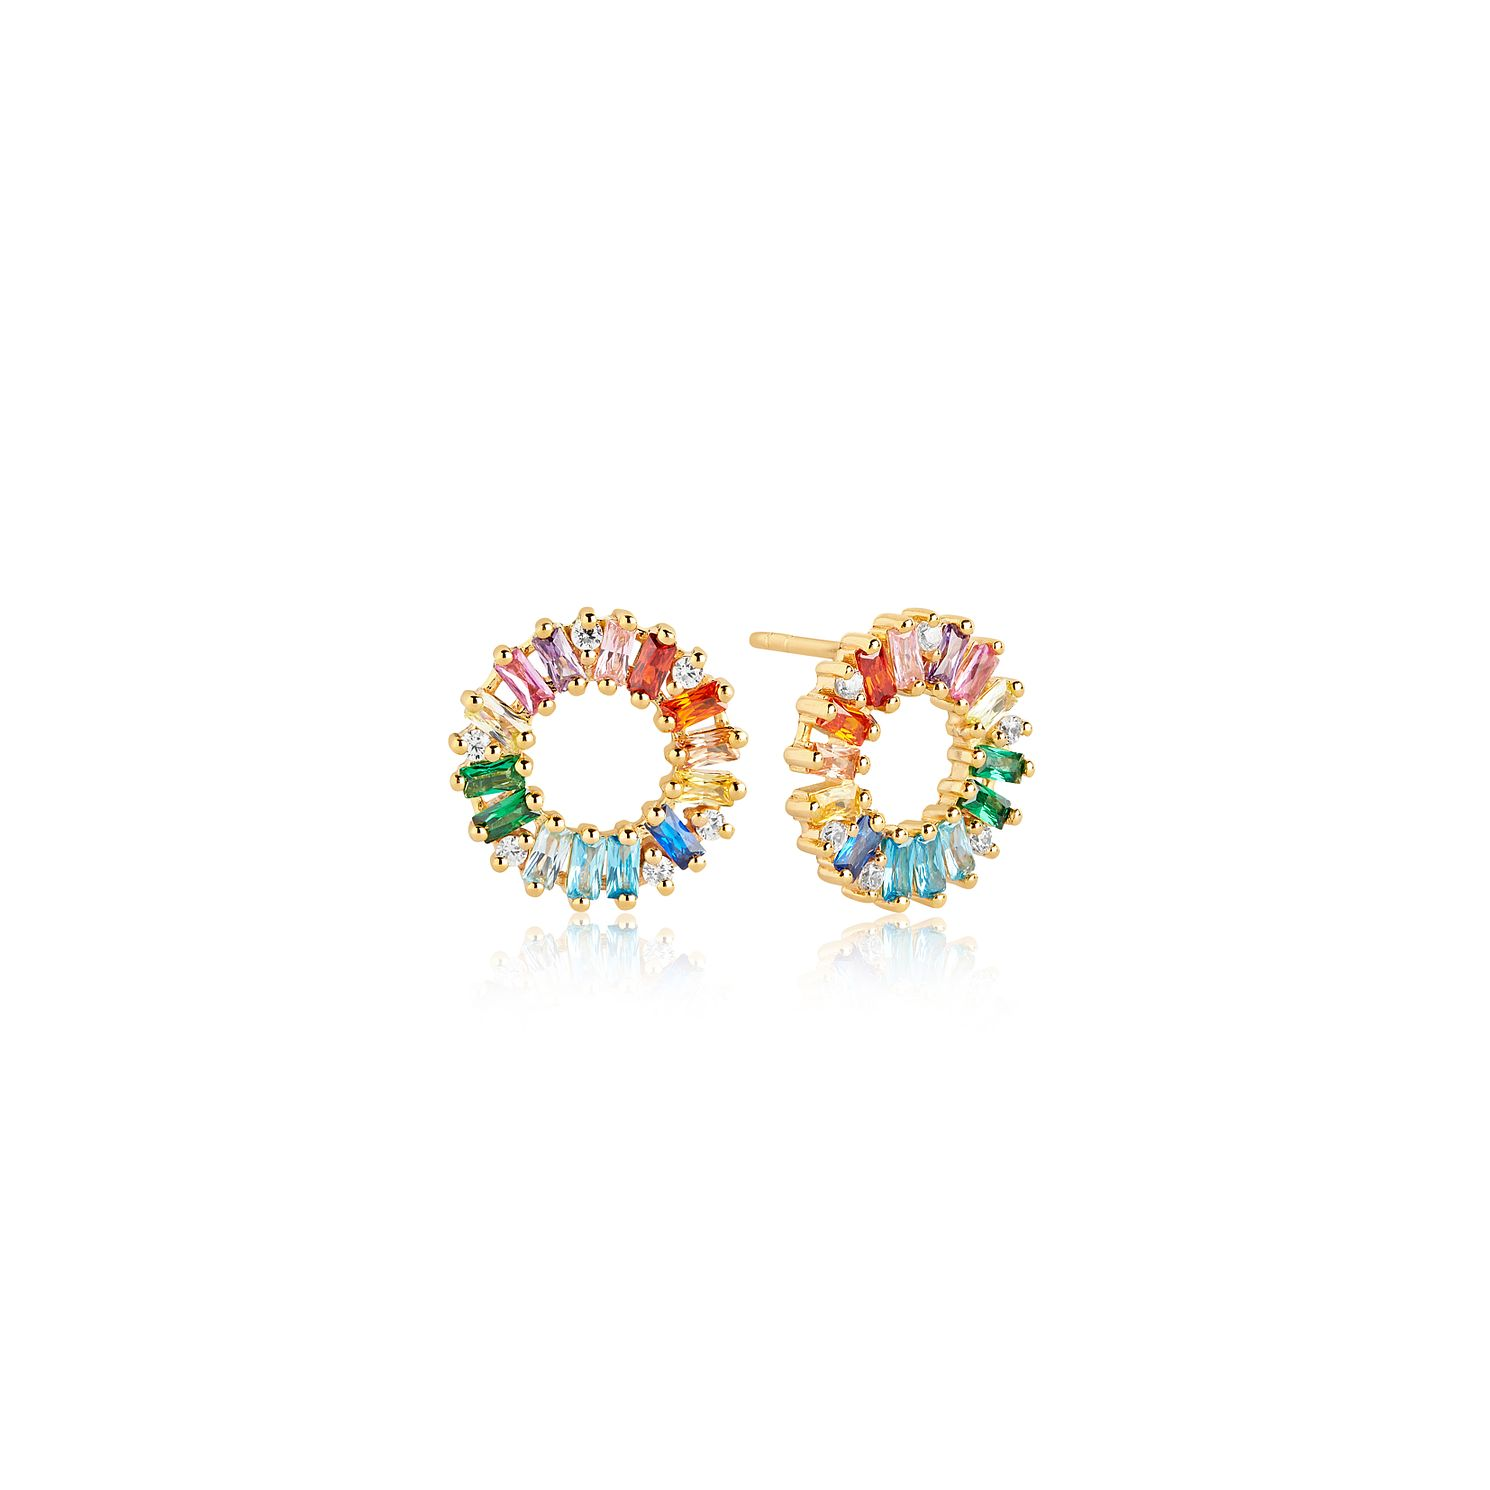 Sif Jakobs Antella Circolo Grande Gold Plated Earrings - Product number 4423135